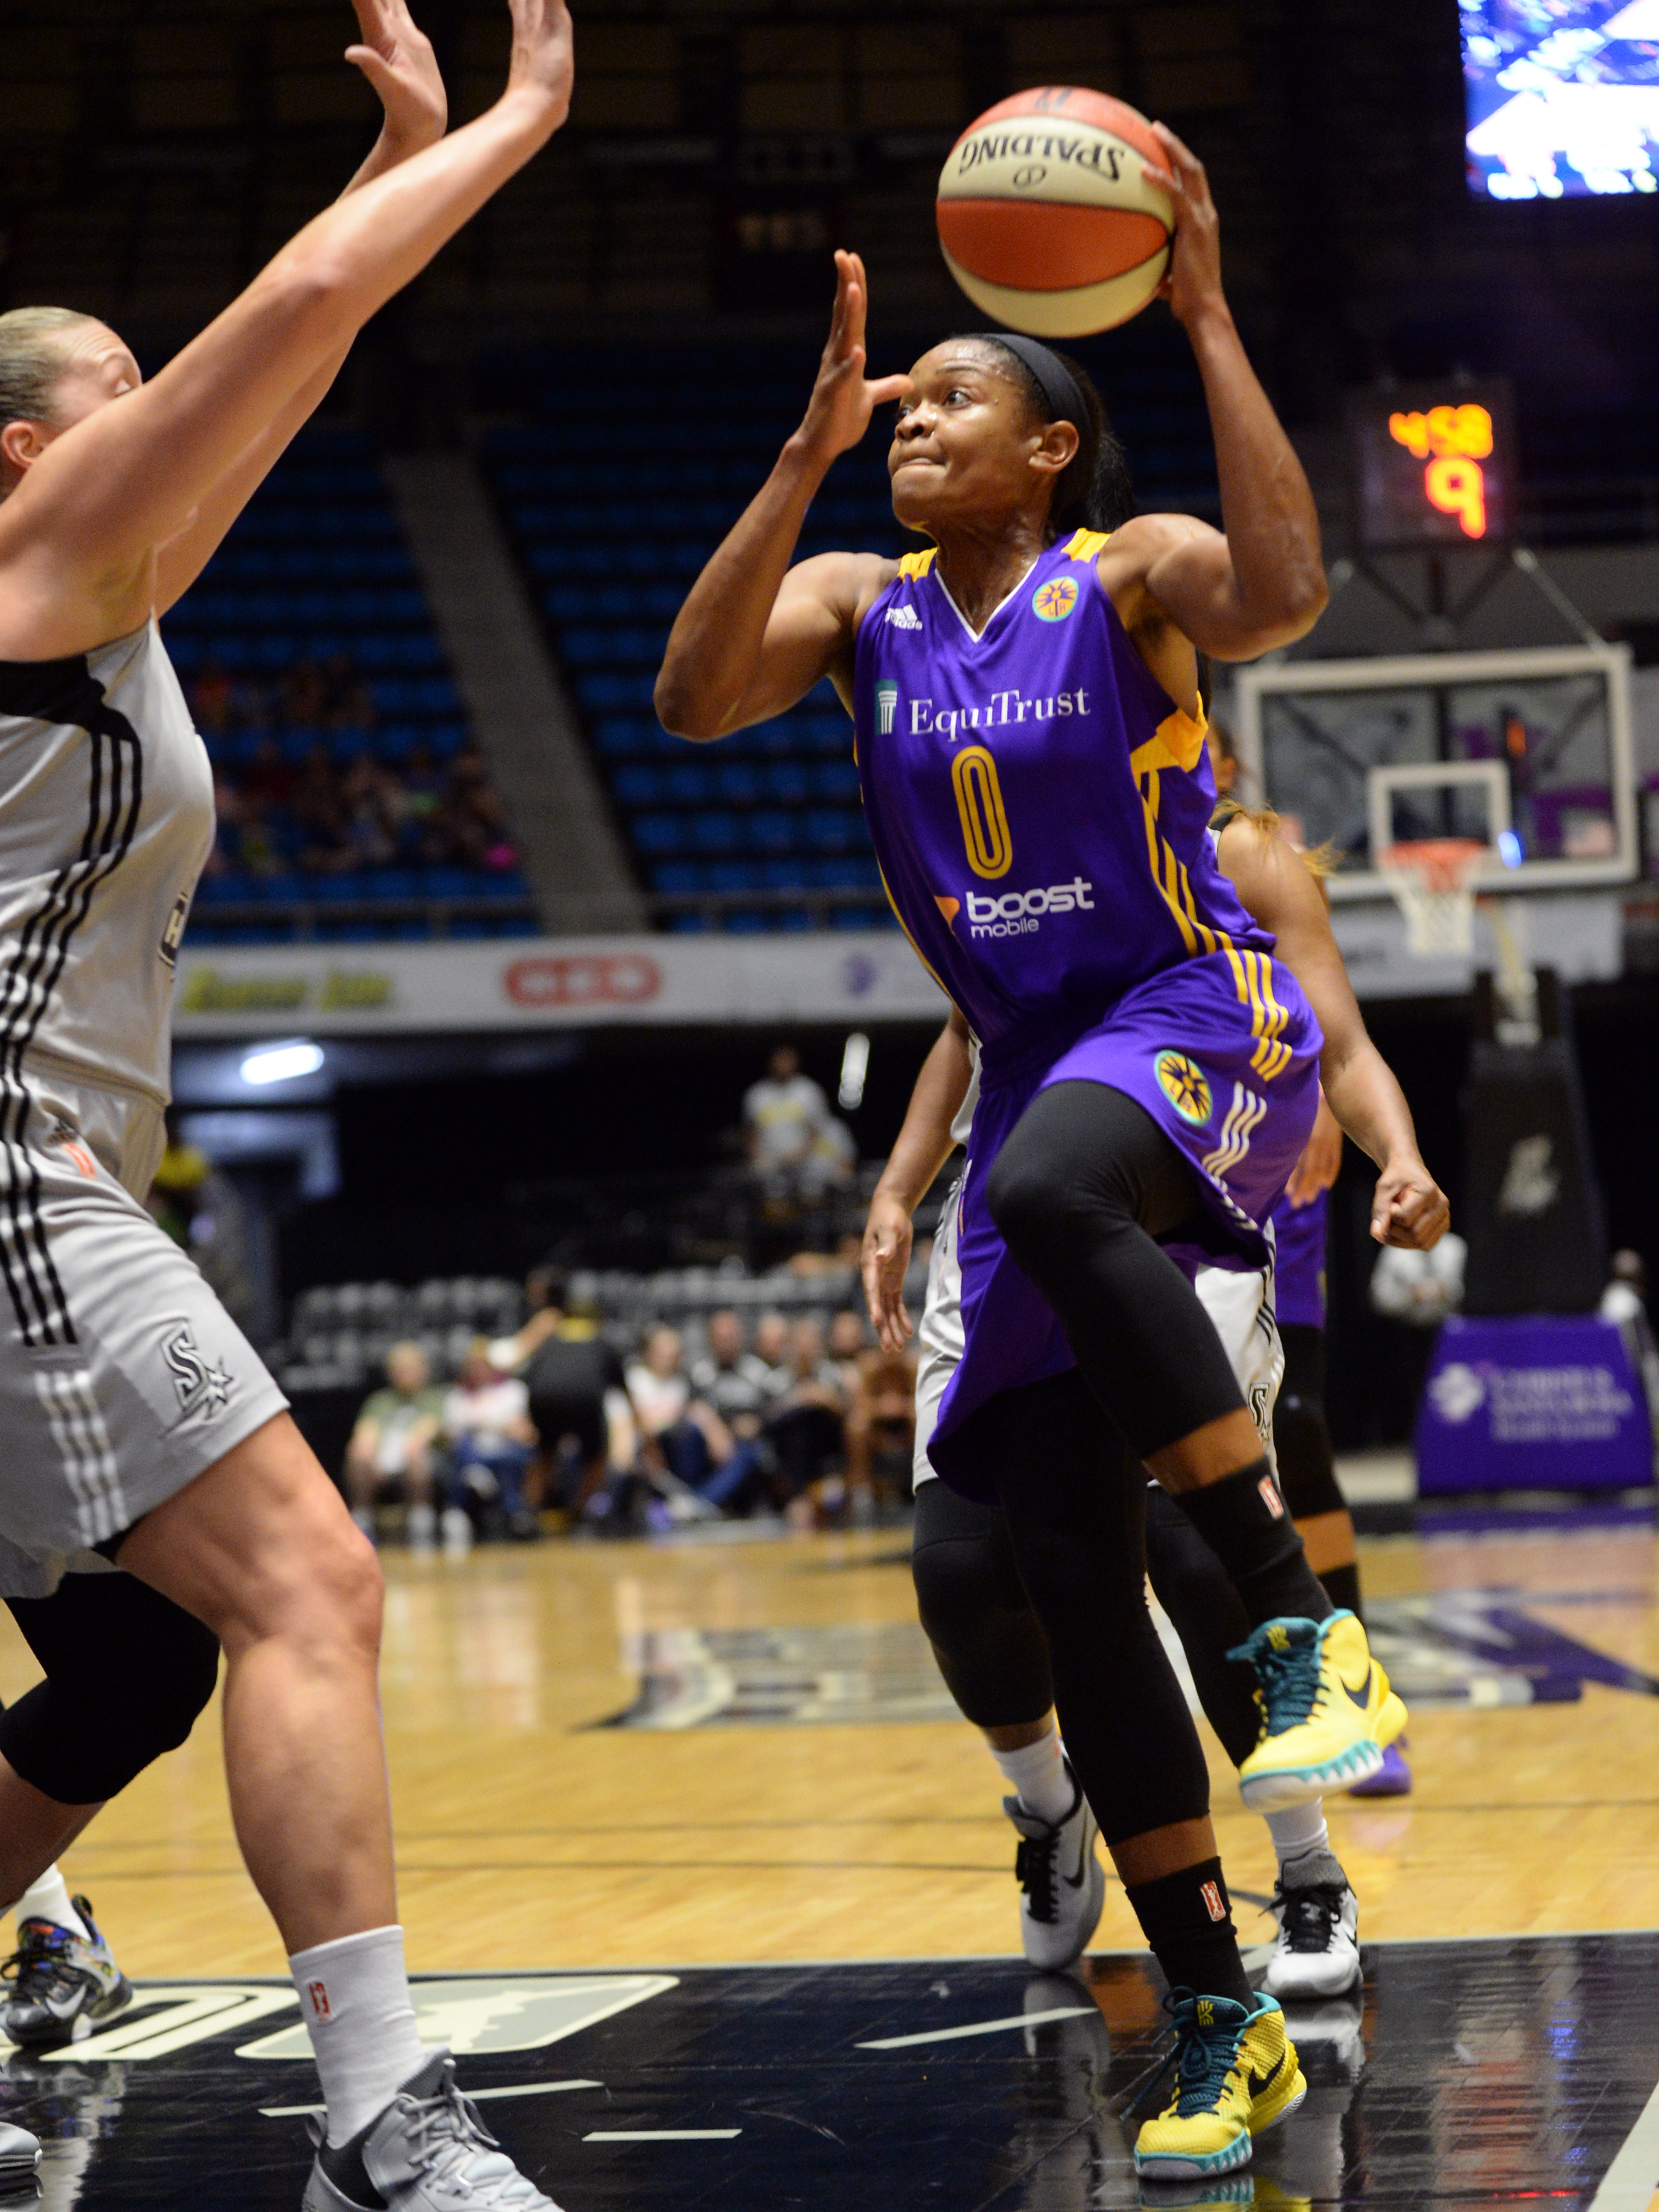 SAN ANTONIO - AUGUST 2: Alana Beard #0 of the Los Angeles Sparks drives to the basket against the San Antonio Stars on August 2, 2015 at the Freeman Coliseum in San Antonio, Texas.